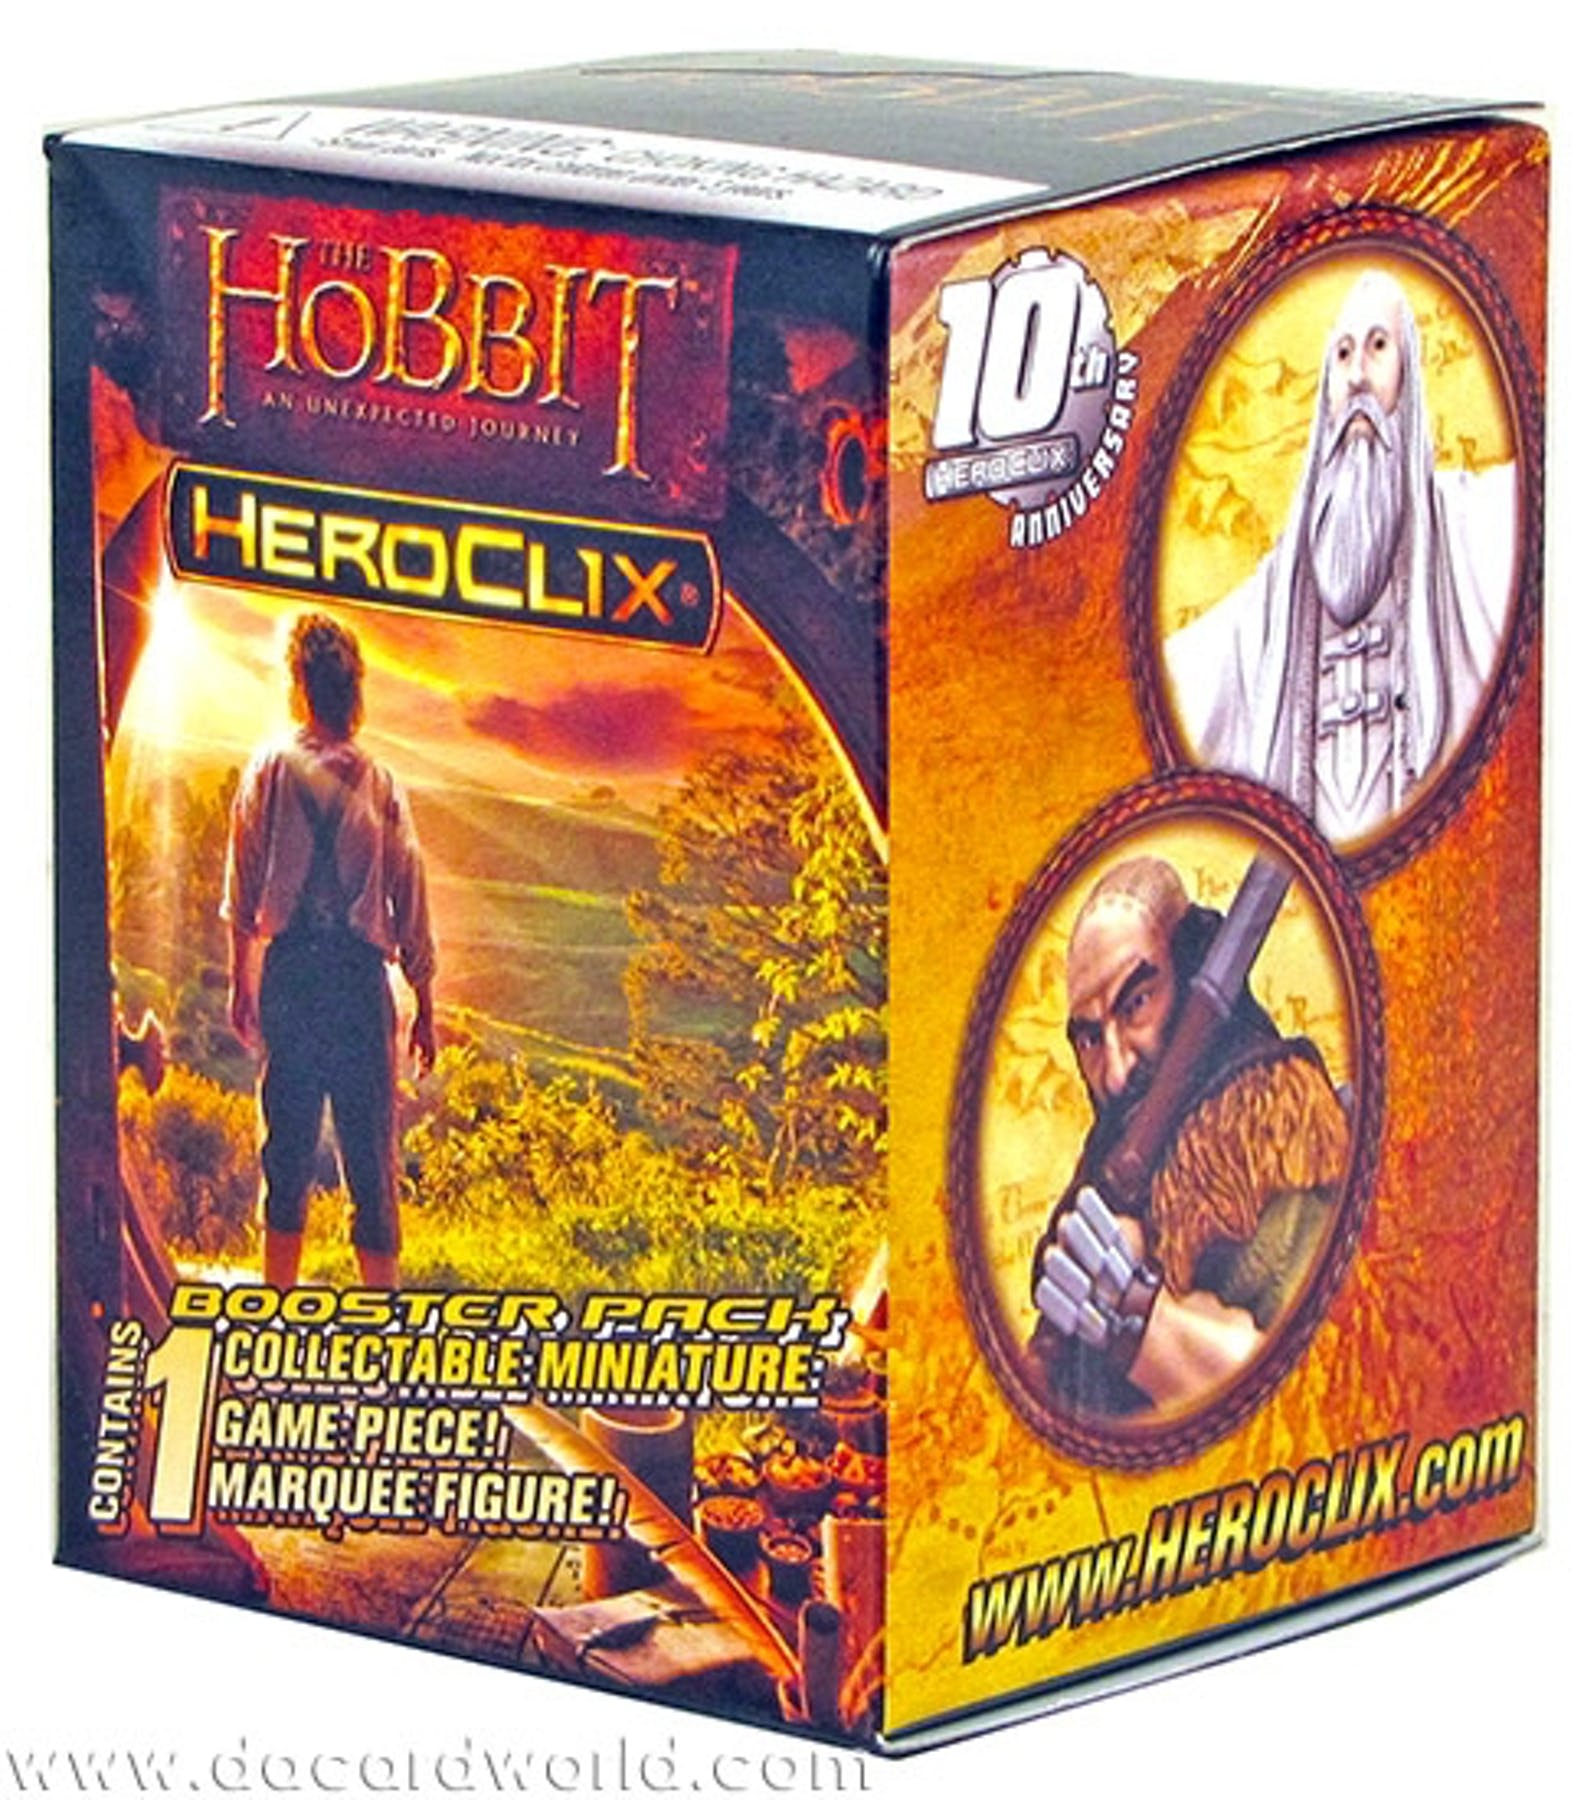 The Hobbit: An Unexpected Journey HeroClix Single Booster